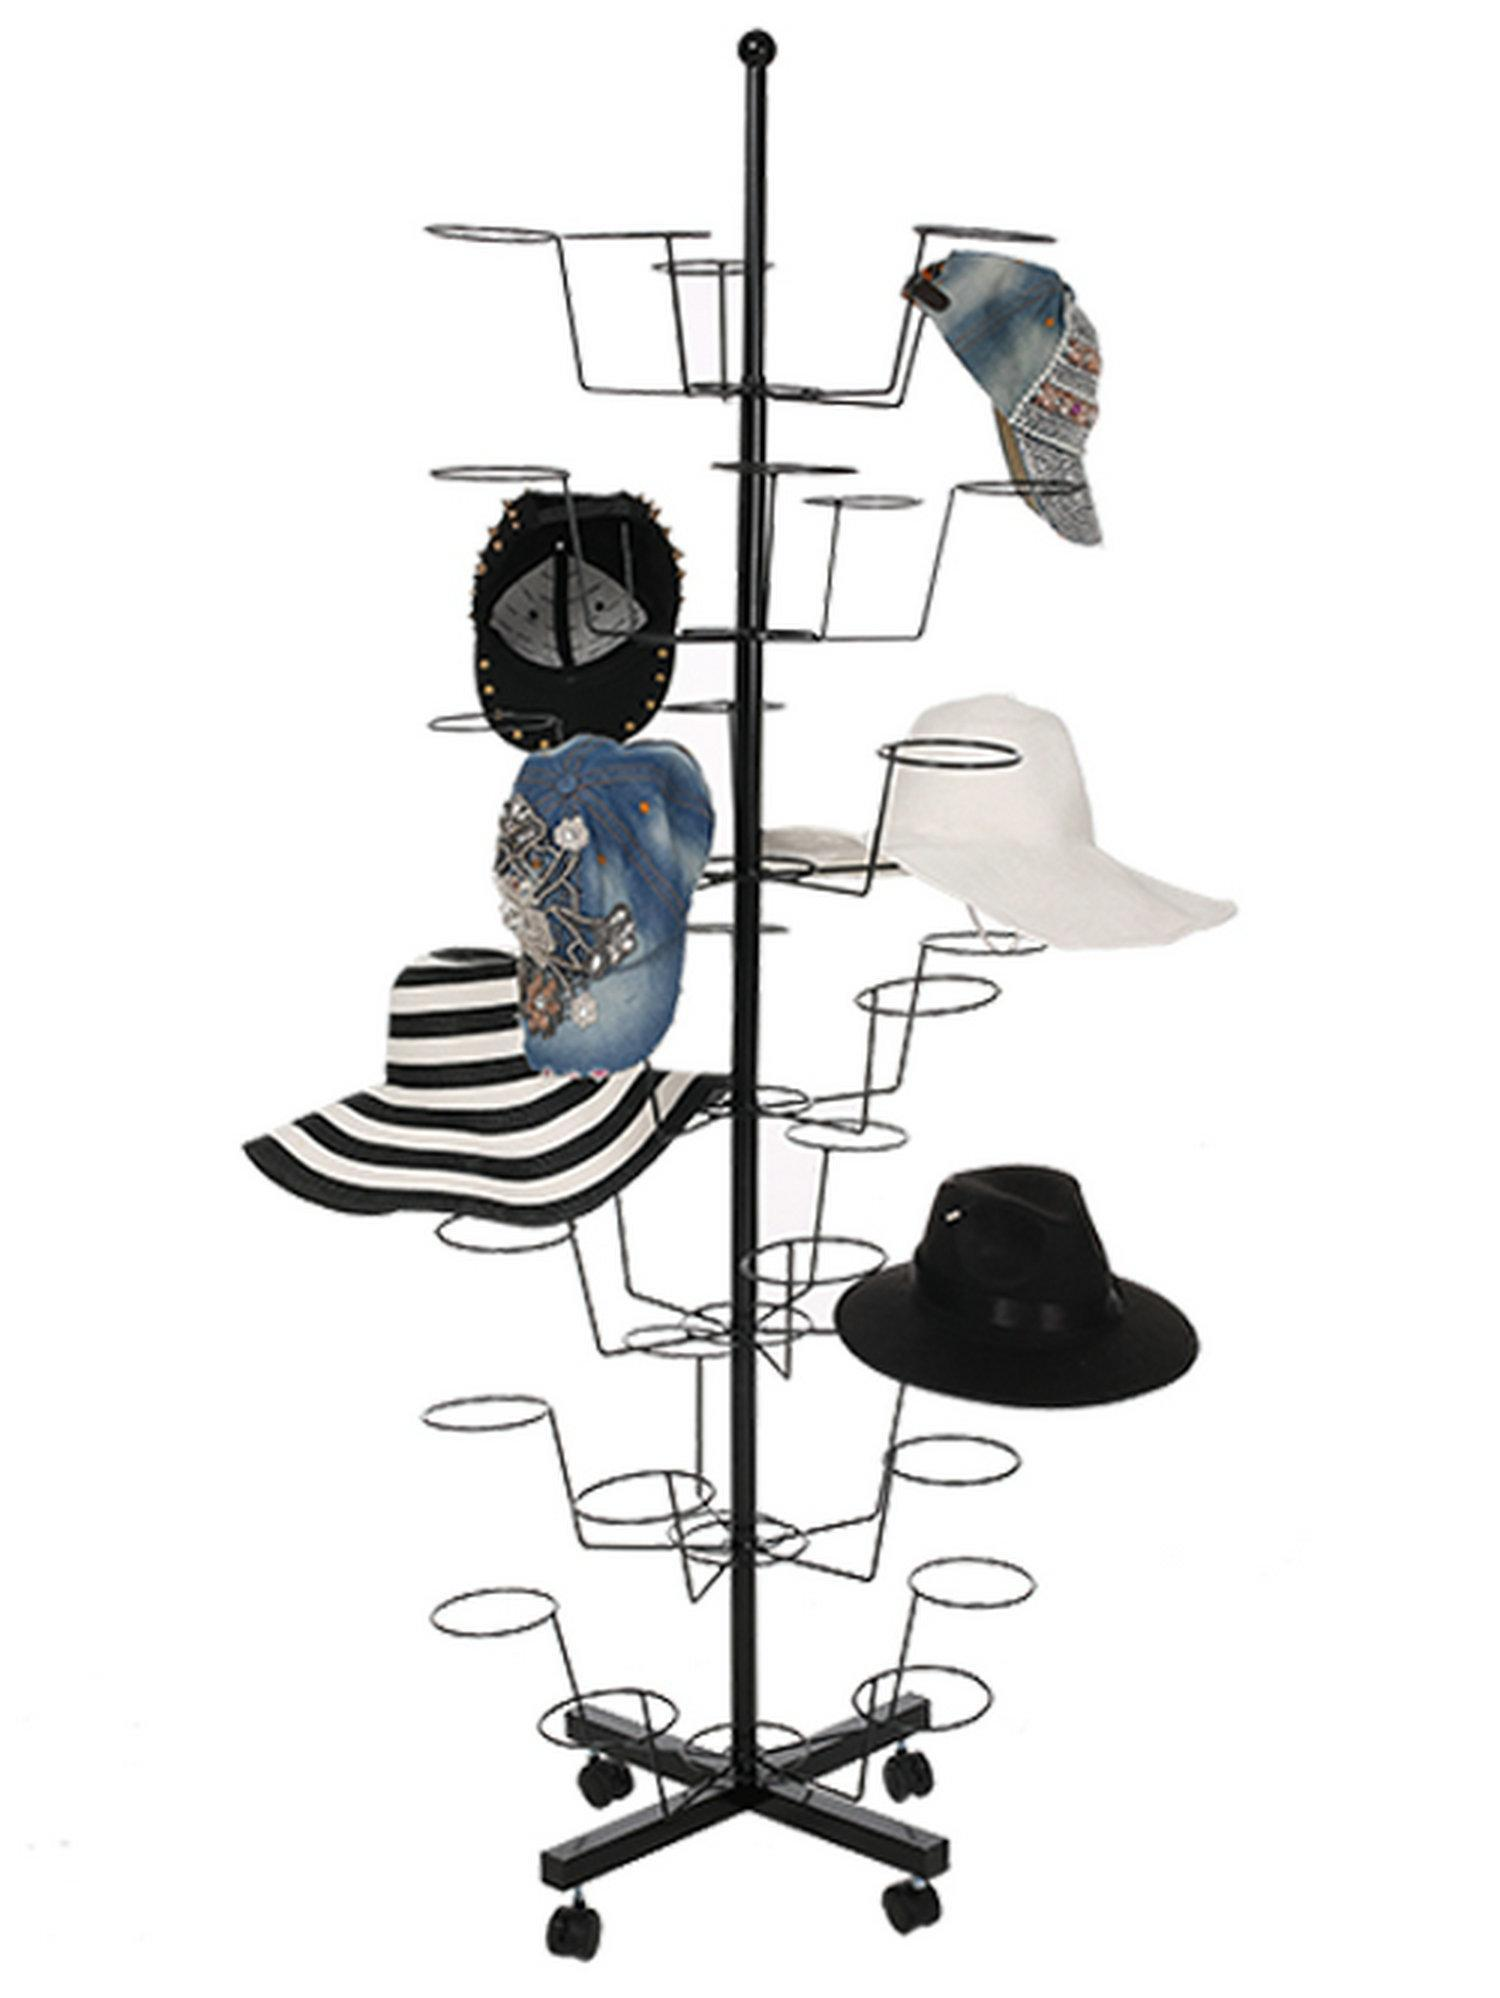 35 Pieces 7 Tiers Adjustable Hat Display Stand Rack SPPYY by